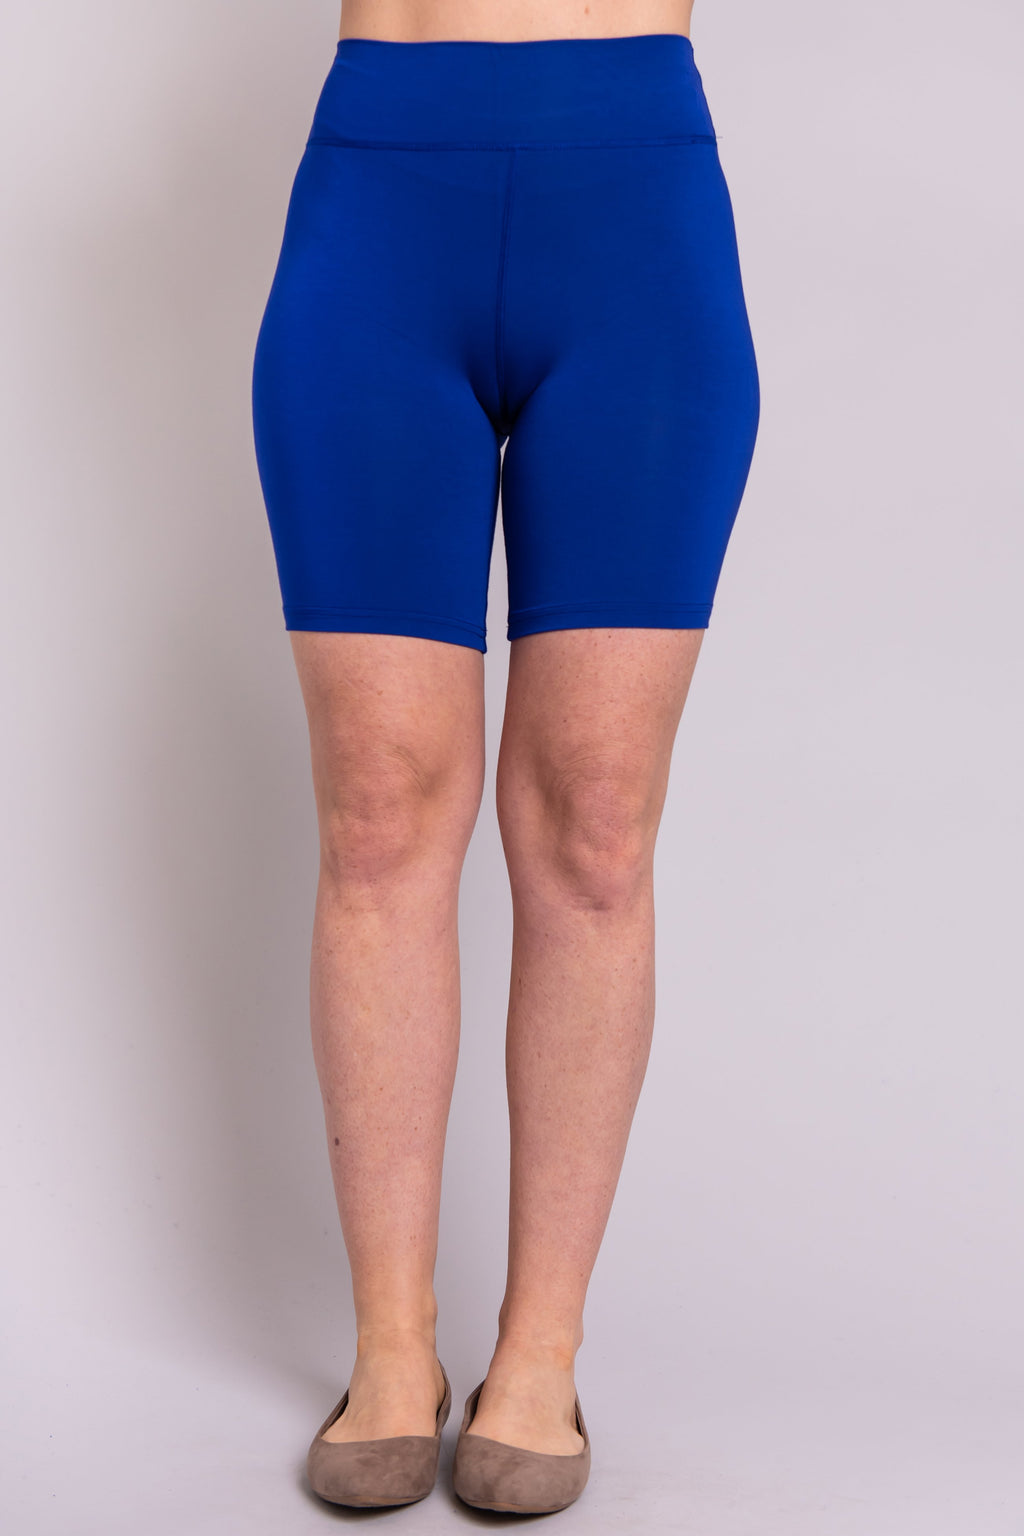 Hallie Shorts, Violet, Bamboo - Blue Sky Clothing Co